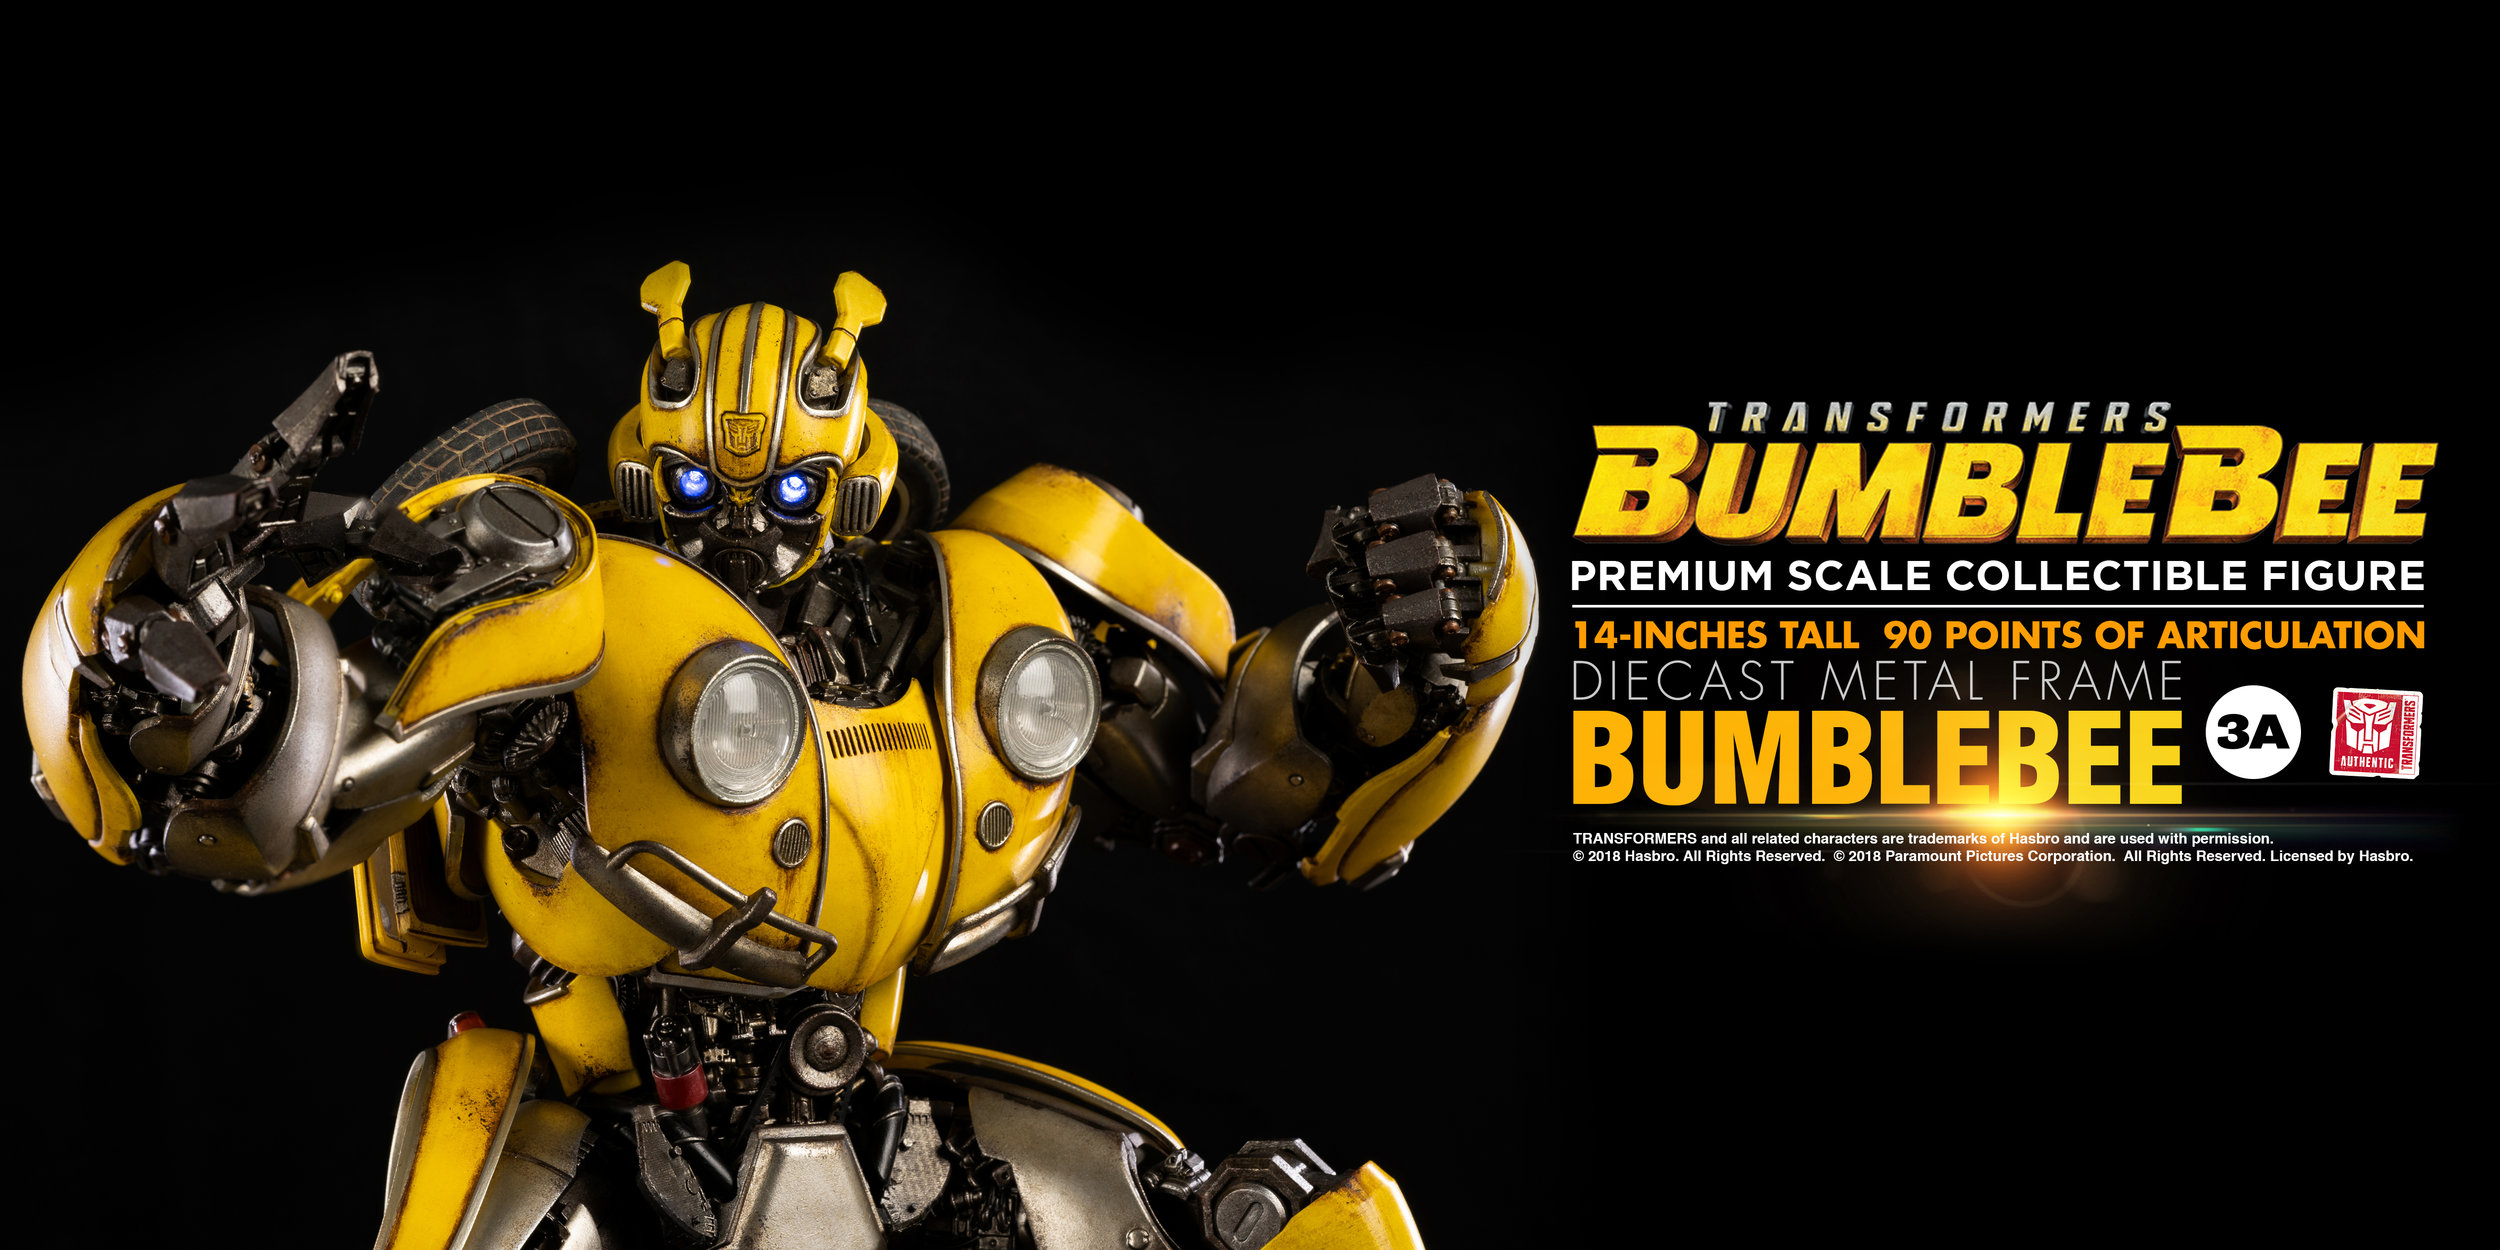 BUMBLEBEE - Premium Scale Collectible Figure! 14inches tall, 90 Points of Articulation, Diecast Metal Frame! Now available for pre-order at the 3A Store!